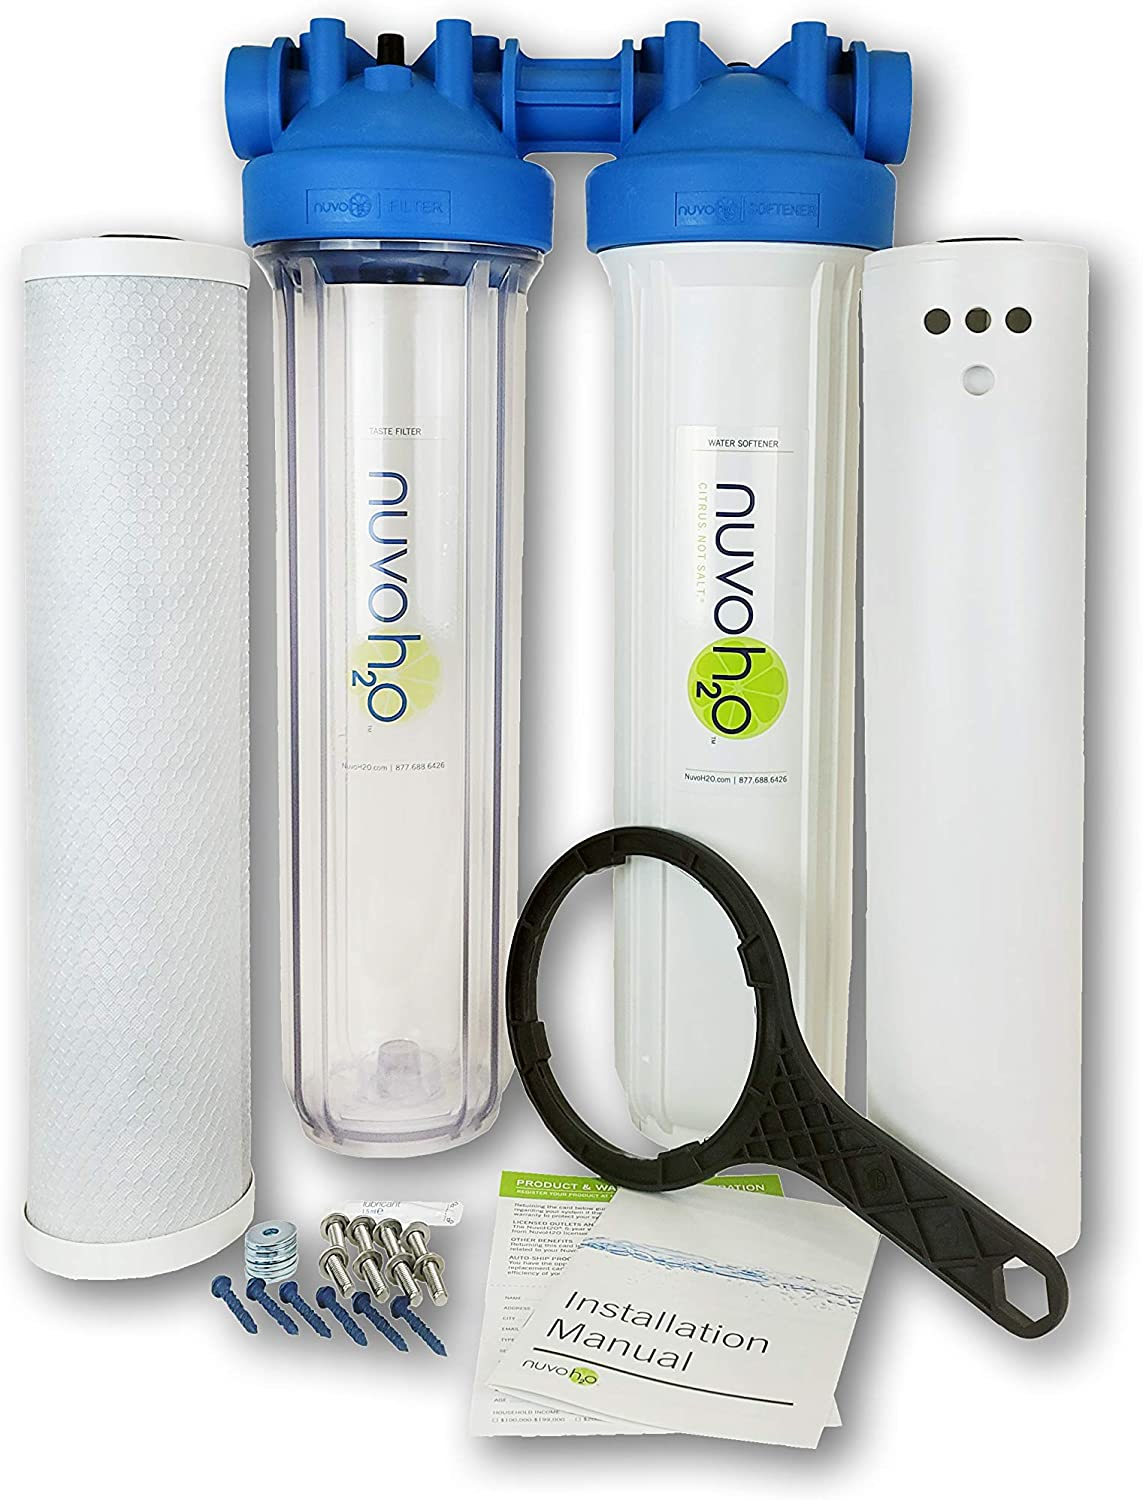 NUVOH2O Manor Duo - Water Softener + Taste System